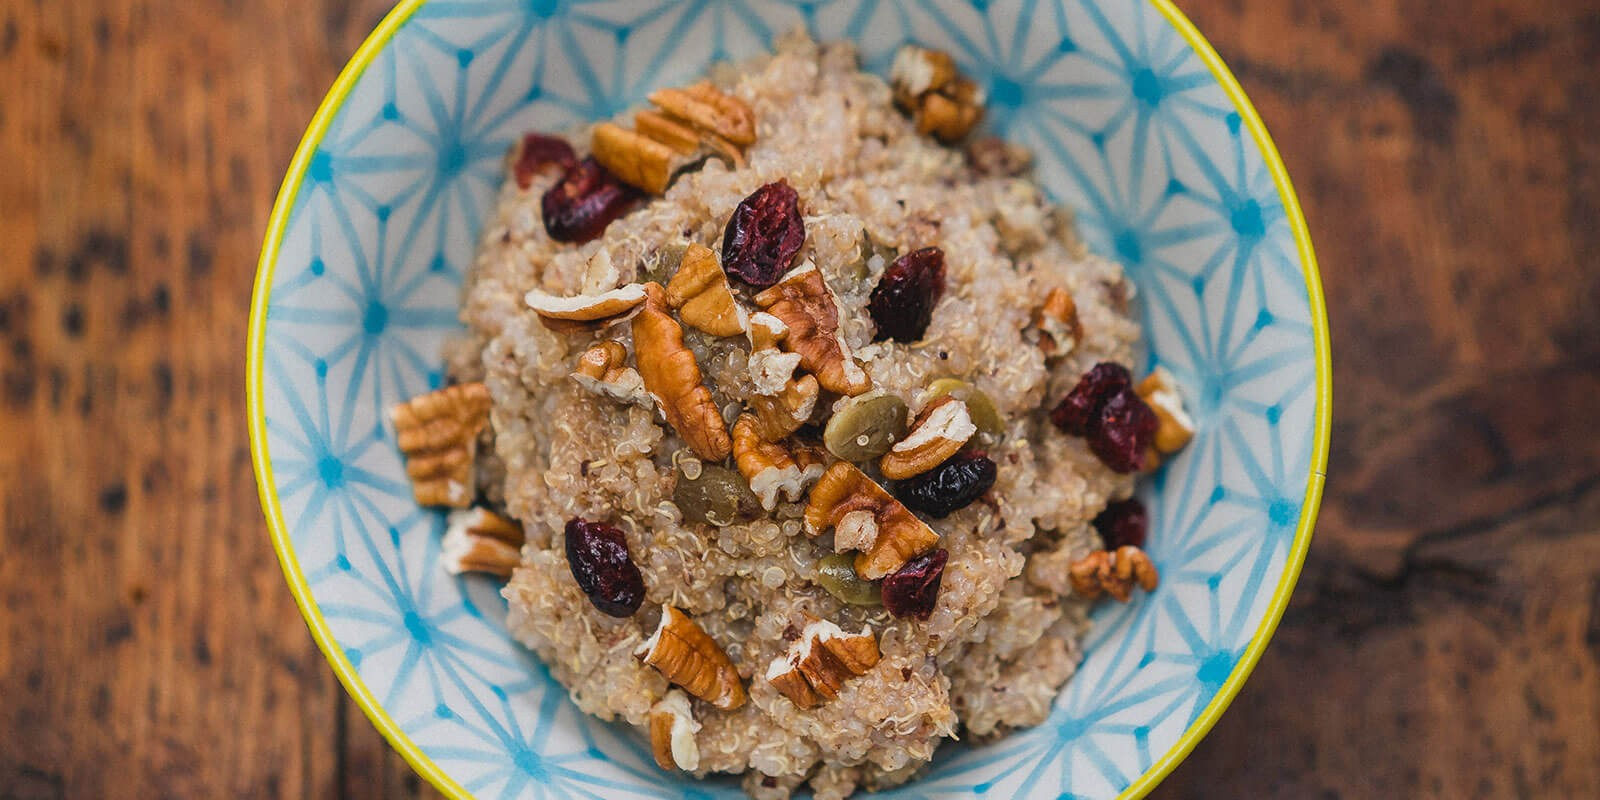 http://www.dreamplantbased.com/wp-content/uploads/2016/01/Quinoa_Maranatha_Breakfast_Porridge-1600x800.jpg